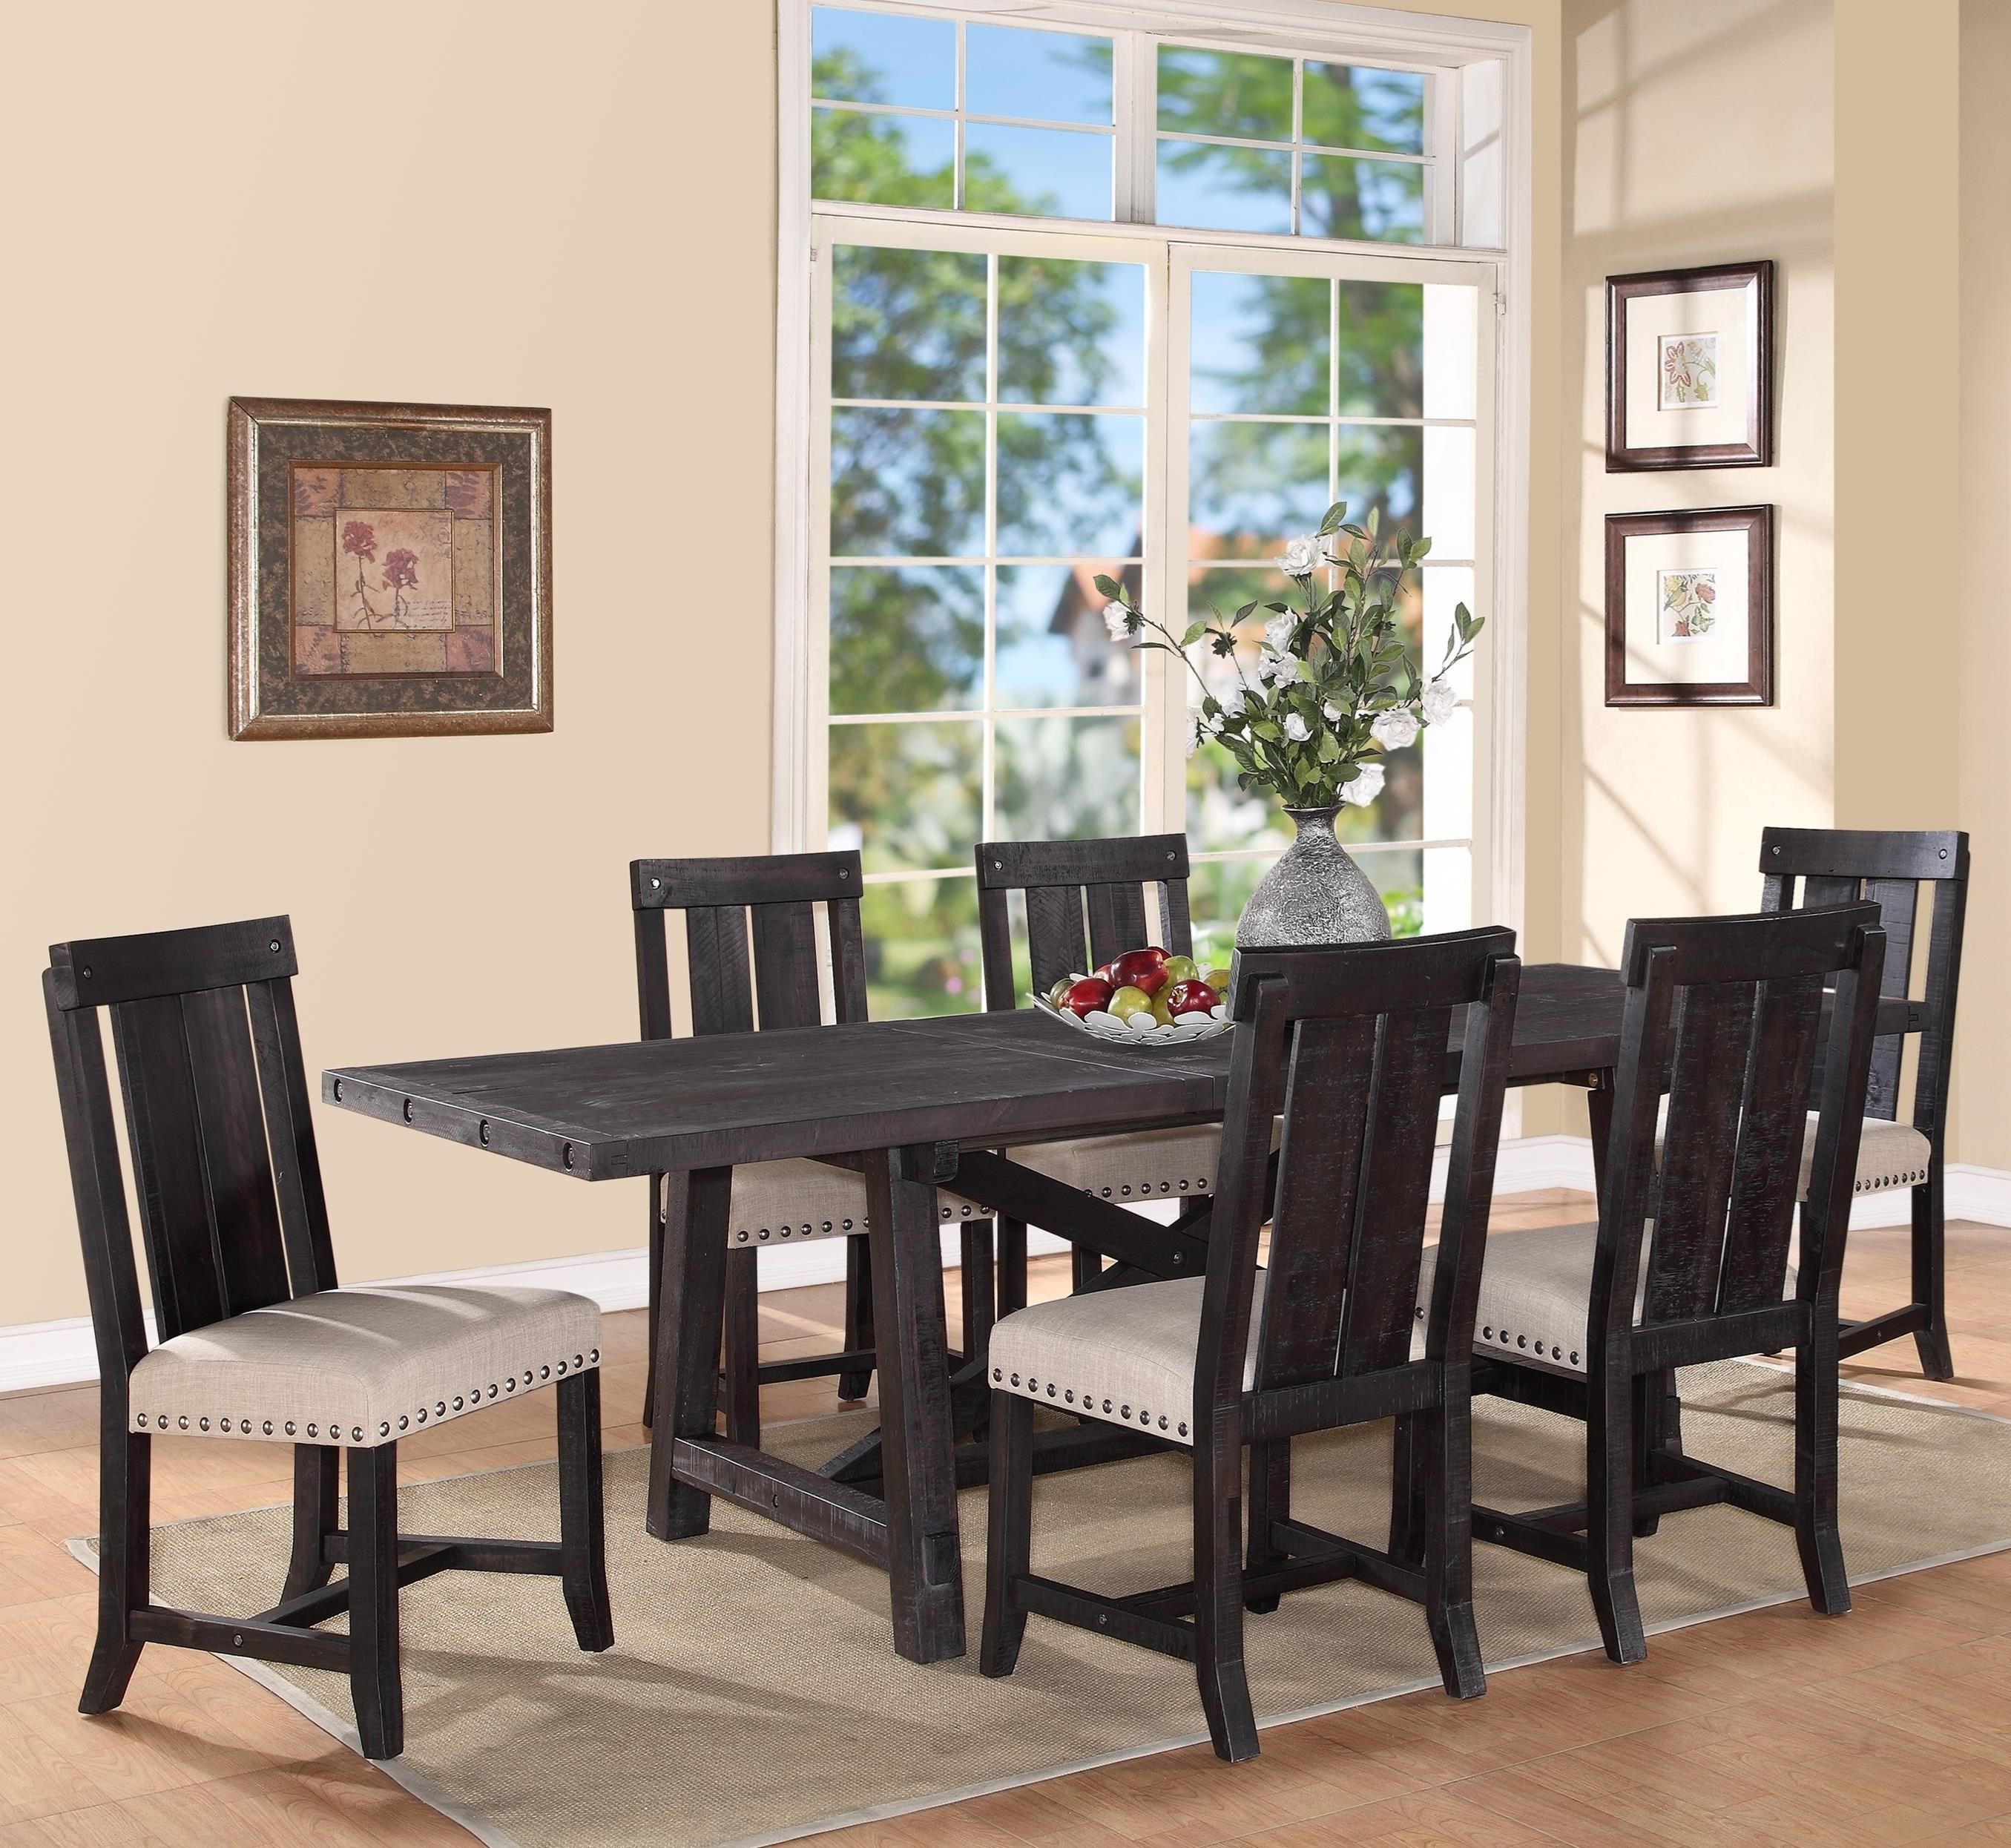 Modus International Yosemite7 Piece Rectangular Dining Table Set ...